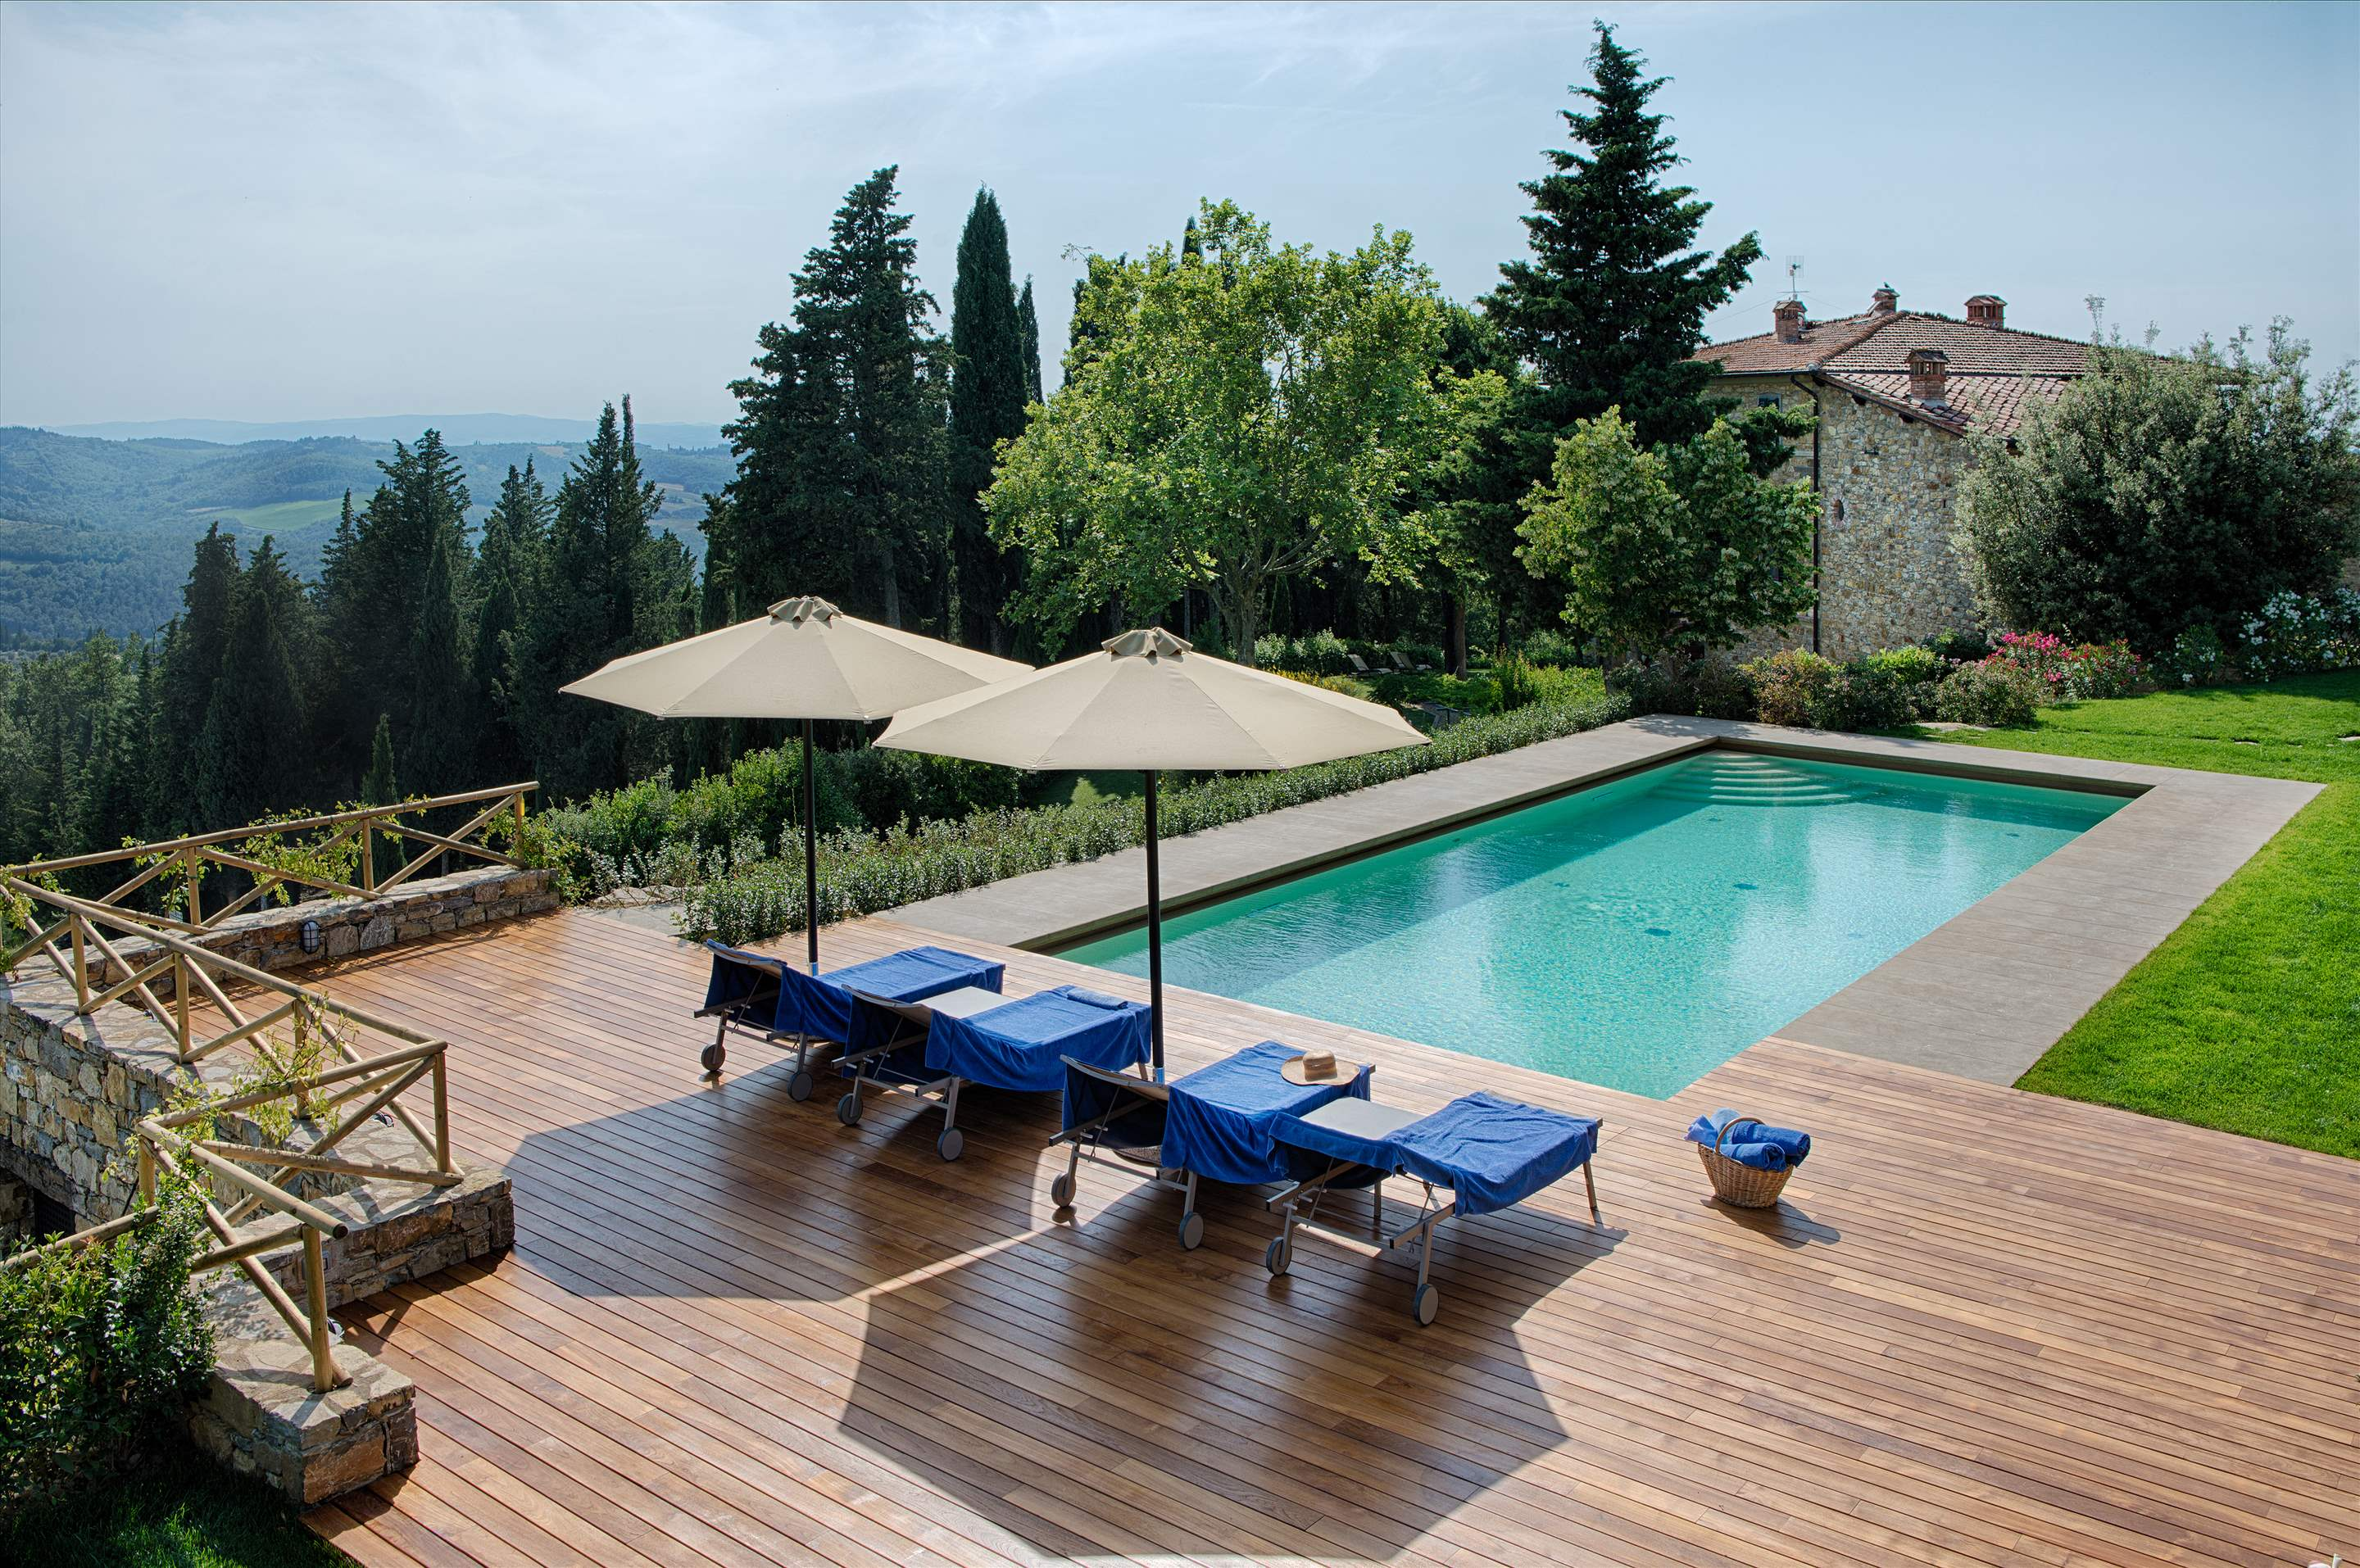 Villa La Valetta, 1 Bed Apt Ulivo, 1 bedroom villa in Chianti & Countryside, Tuscany Photo #1